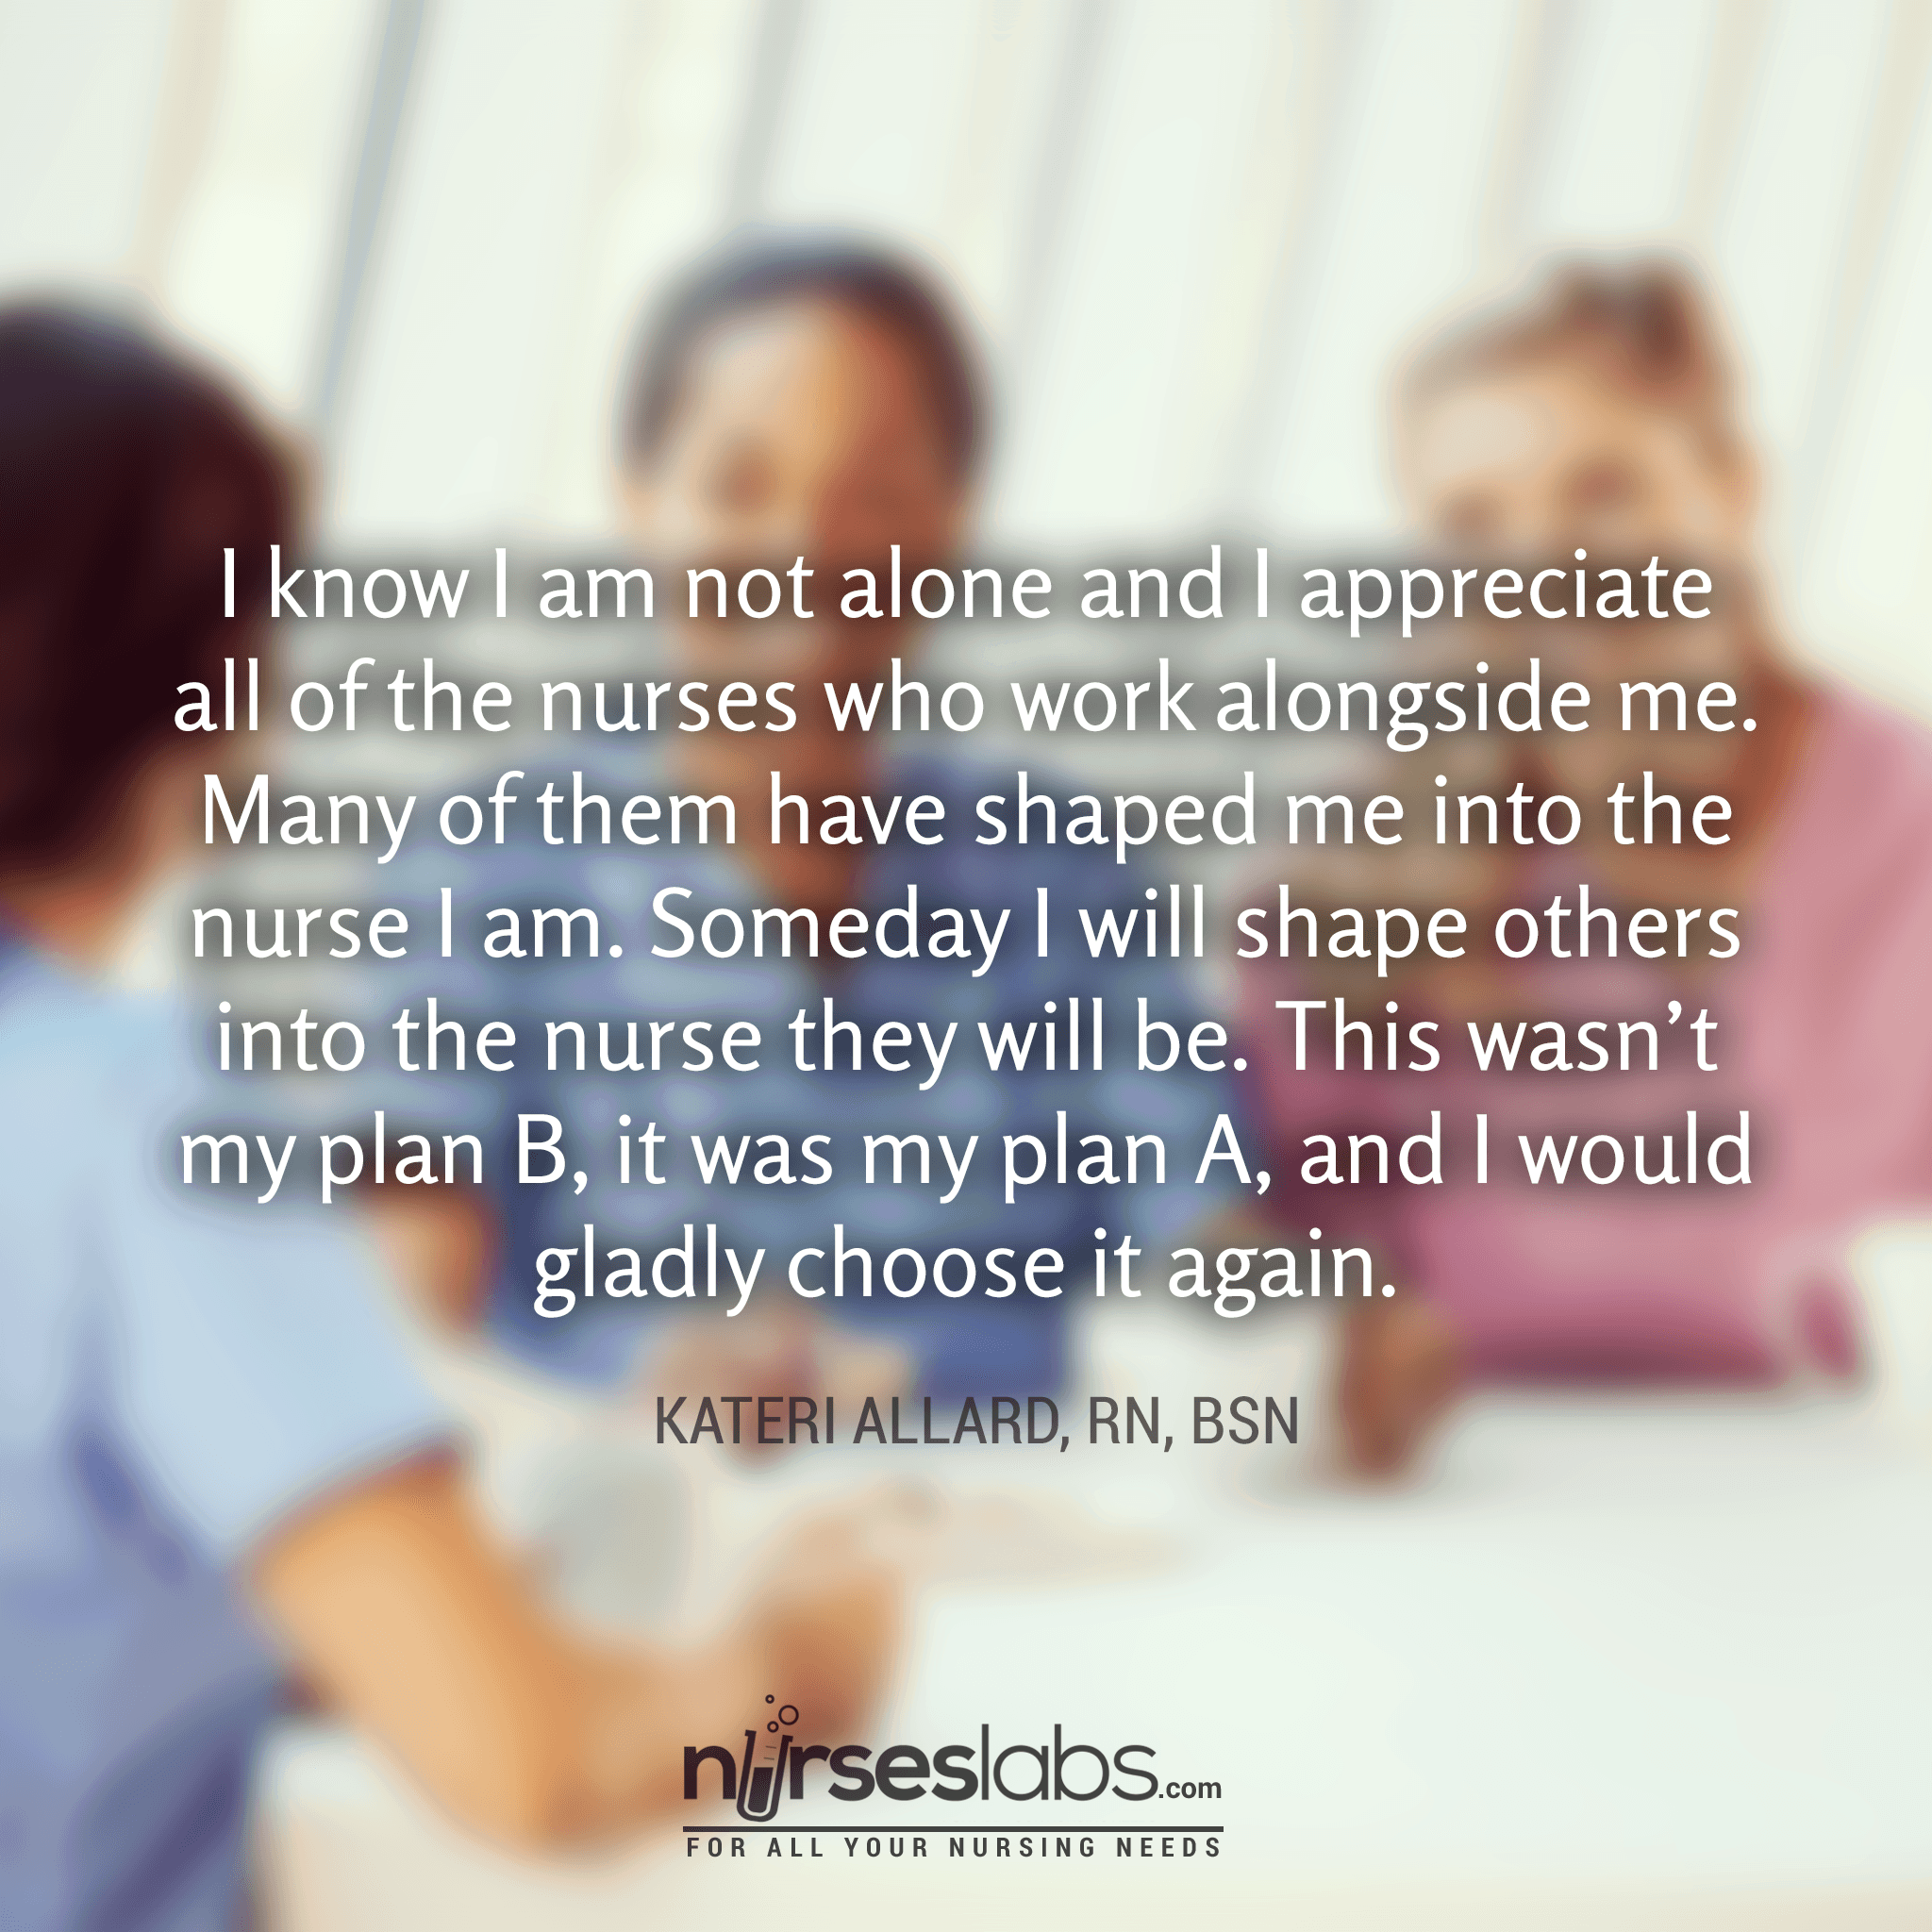 I know I am not alone and I appreciate all of the nurses who work alongside me. Many of them have shaped me into the nurse I am. Someday I will shape others into the nurse they will be. This wasn't my plan B, it was my plan A, and I would gladly choose it again.